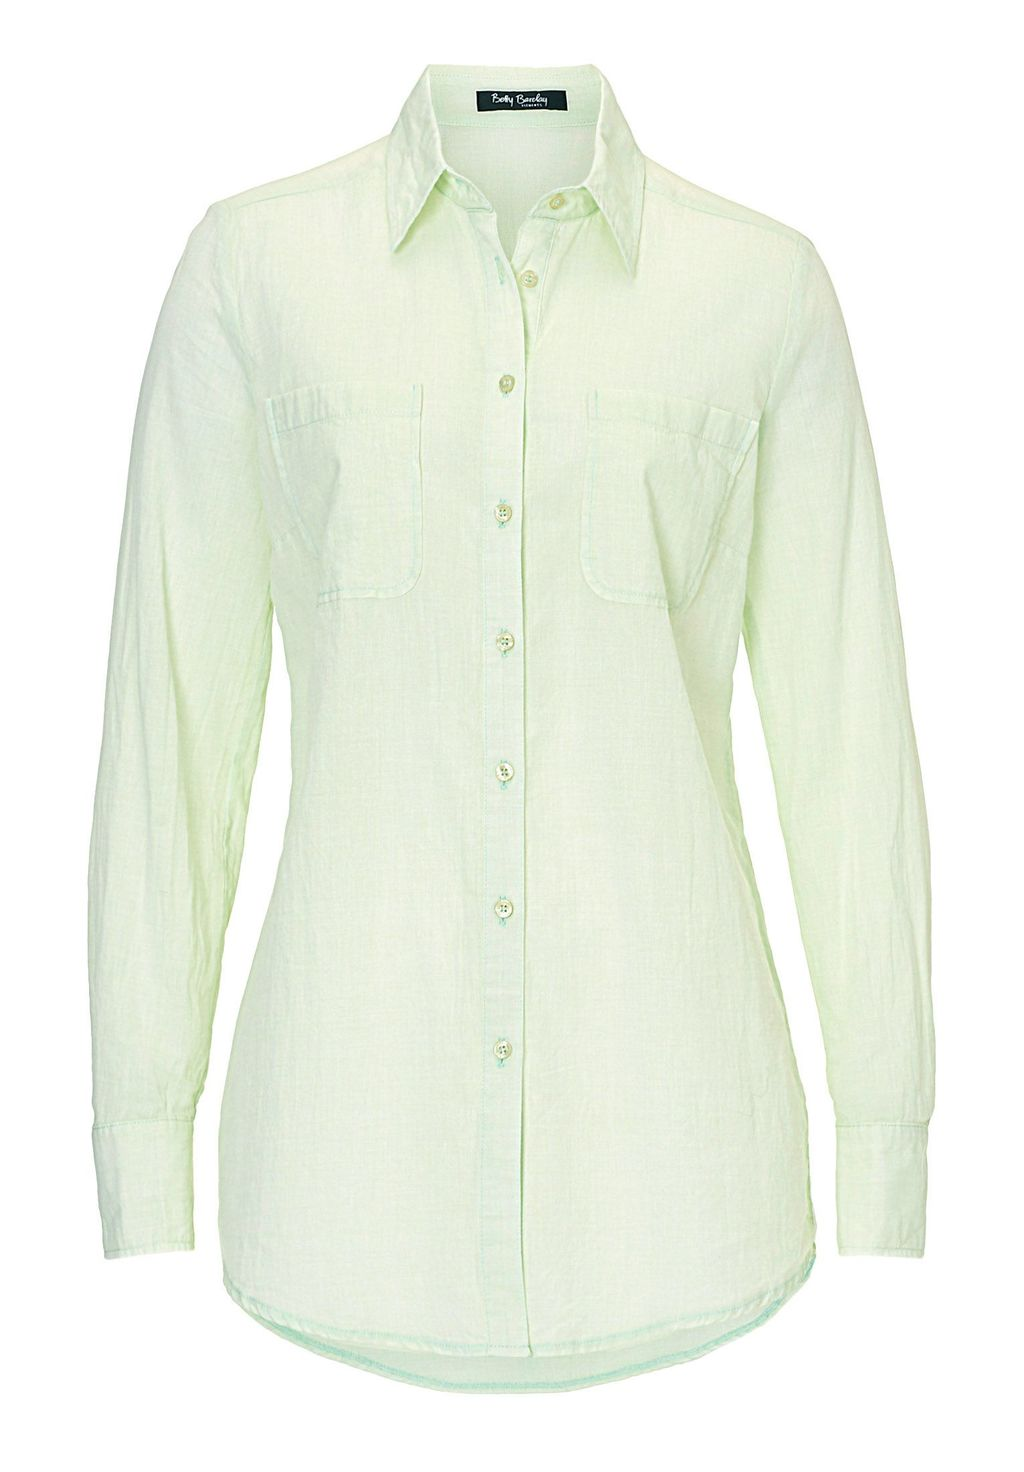 Long Cotton Blouse, Pastel Green - neckline: shirt collar/peter pan/zip with opening; pattern: plain; length: below the bottom; style: shirt; predominant colour: pistachio; occasions: casual, creative work; fibres: cotton - 100%; fit: body skimming; sleeve length: long sleeve; sleeve style: standard; pattern type: fabric; texture group: other - light to midweight; season: s/s 2016; wardrobe: highlight